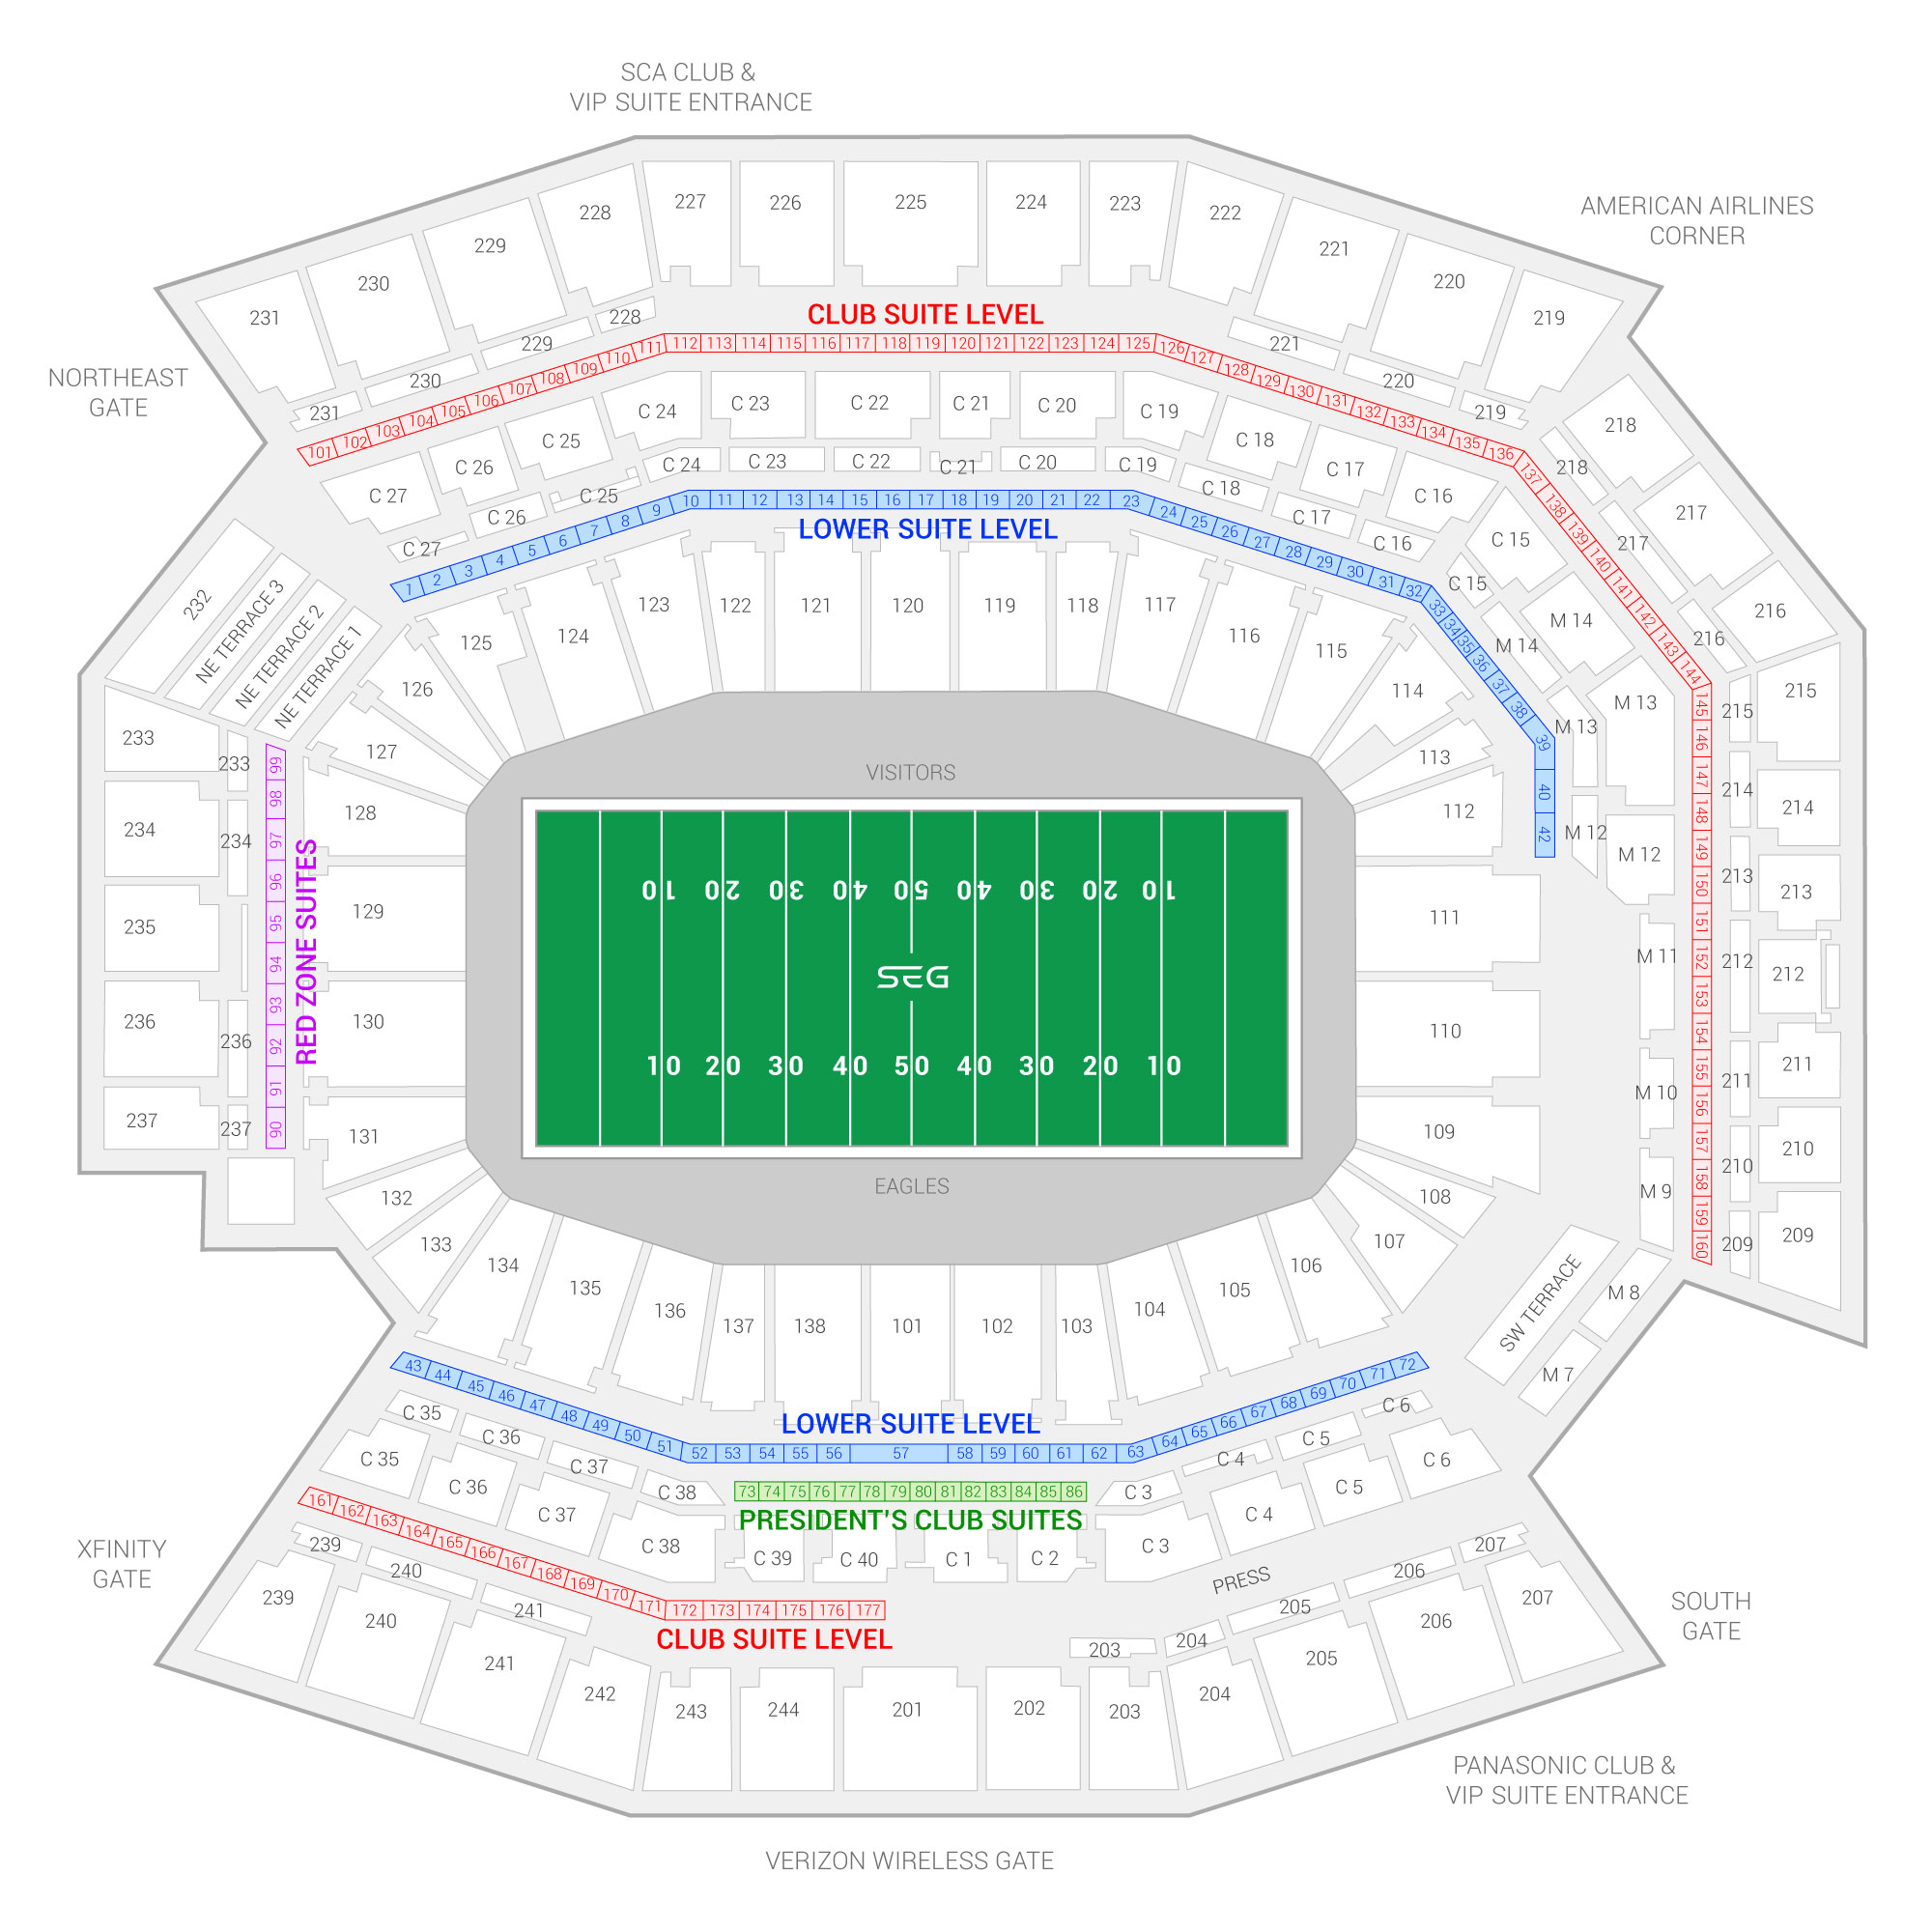 Philadelphia Eagles Suite Rentals | Lincoln Financial Field on giants arena seating, giants jets stadium map, giants stadium seating numbers, giants stadium seating plan, giants stadium seating chart, giants stadium seating view, giants tailgating, giants stadium seating vip seats, giants parking map, giants merchandise, giants spring training tickets, giants at stadium view from my seat, giants schedule,